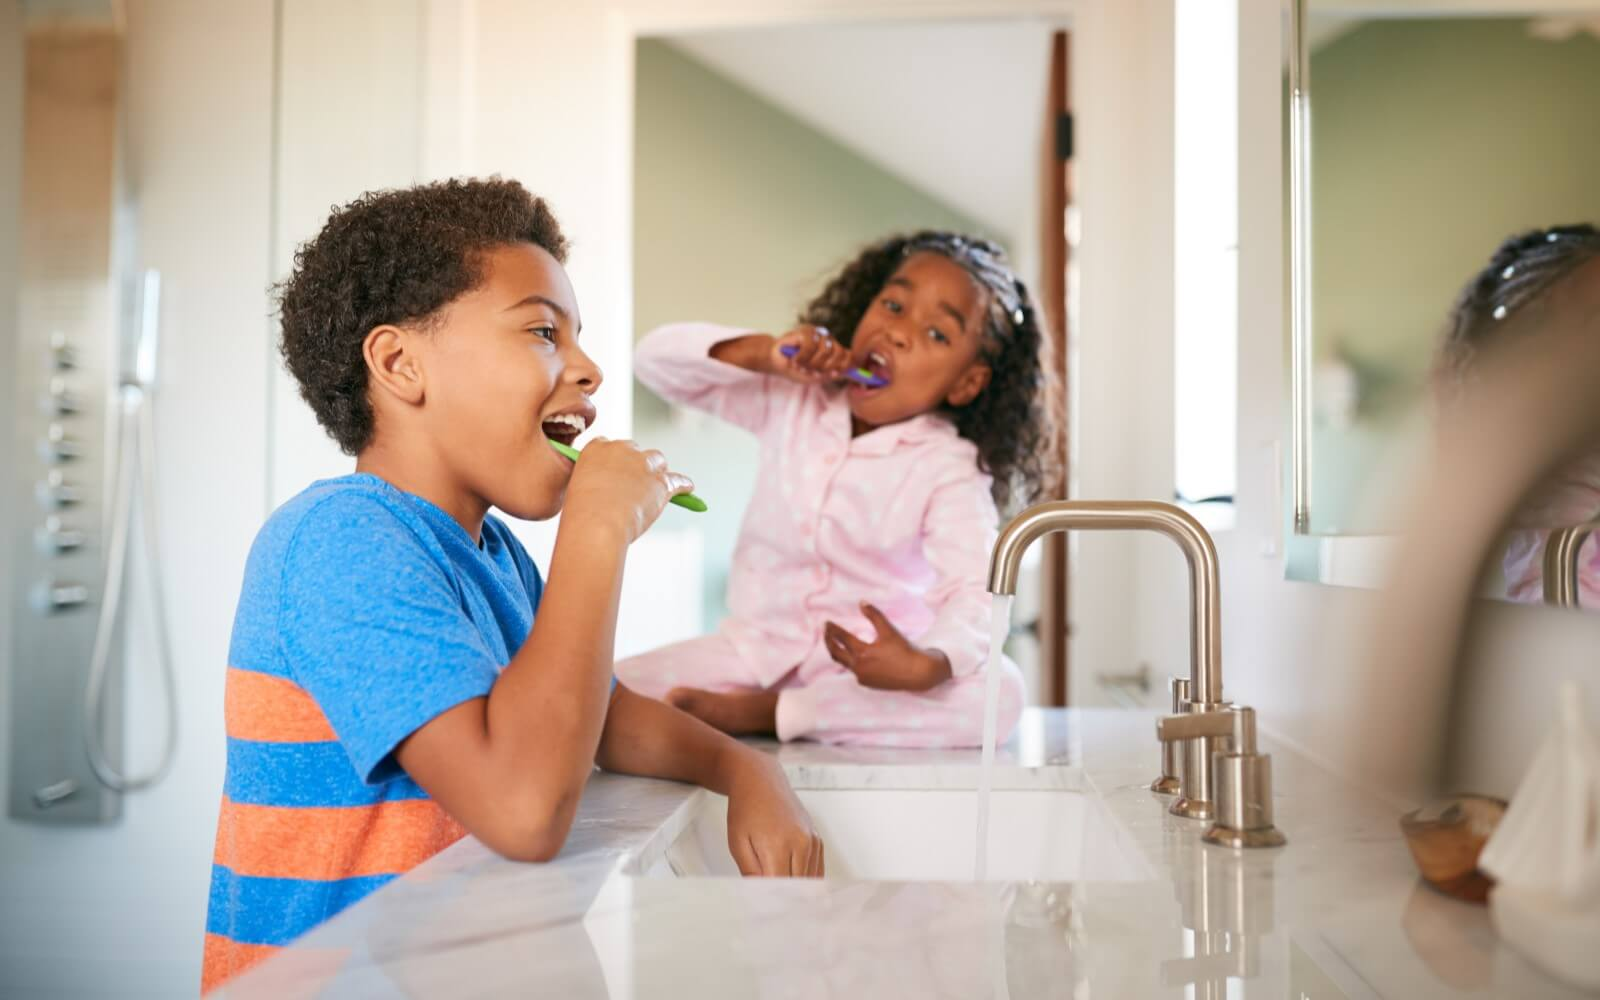 brush your teeth after every meal two kids brushing their teeth in the bathroom